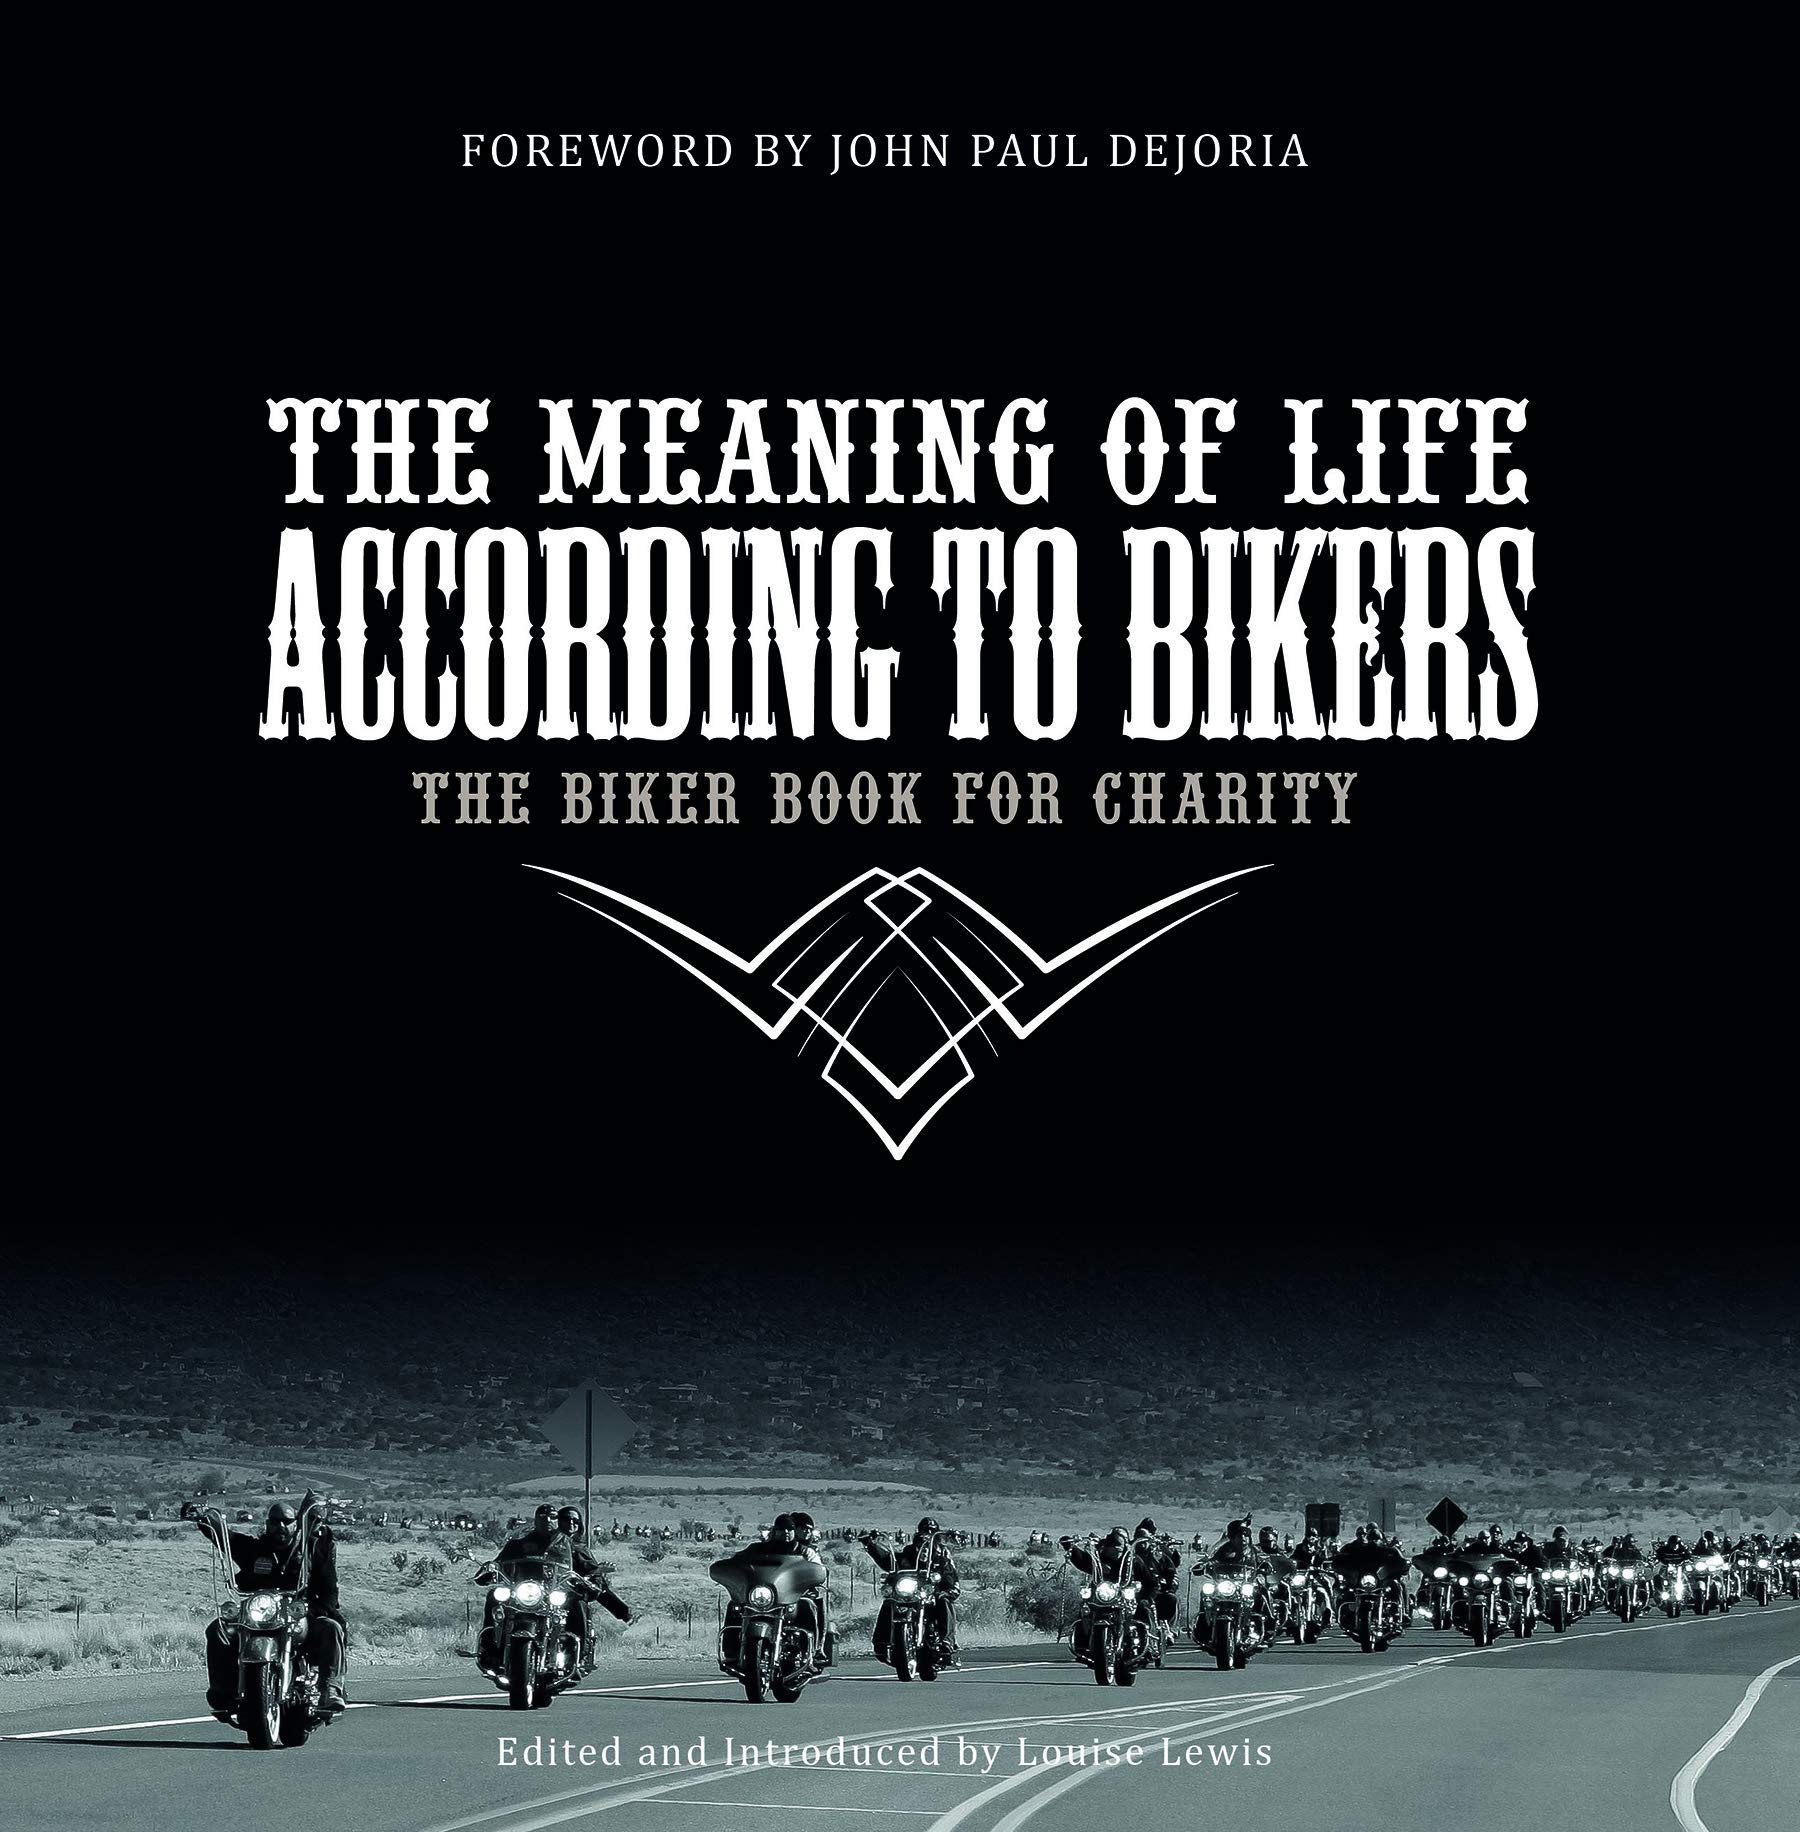 Image OfThe Meaning Of Life According To Bikers: The Biker Book For Charity